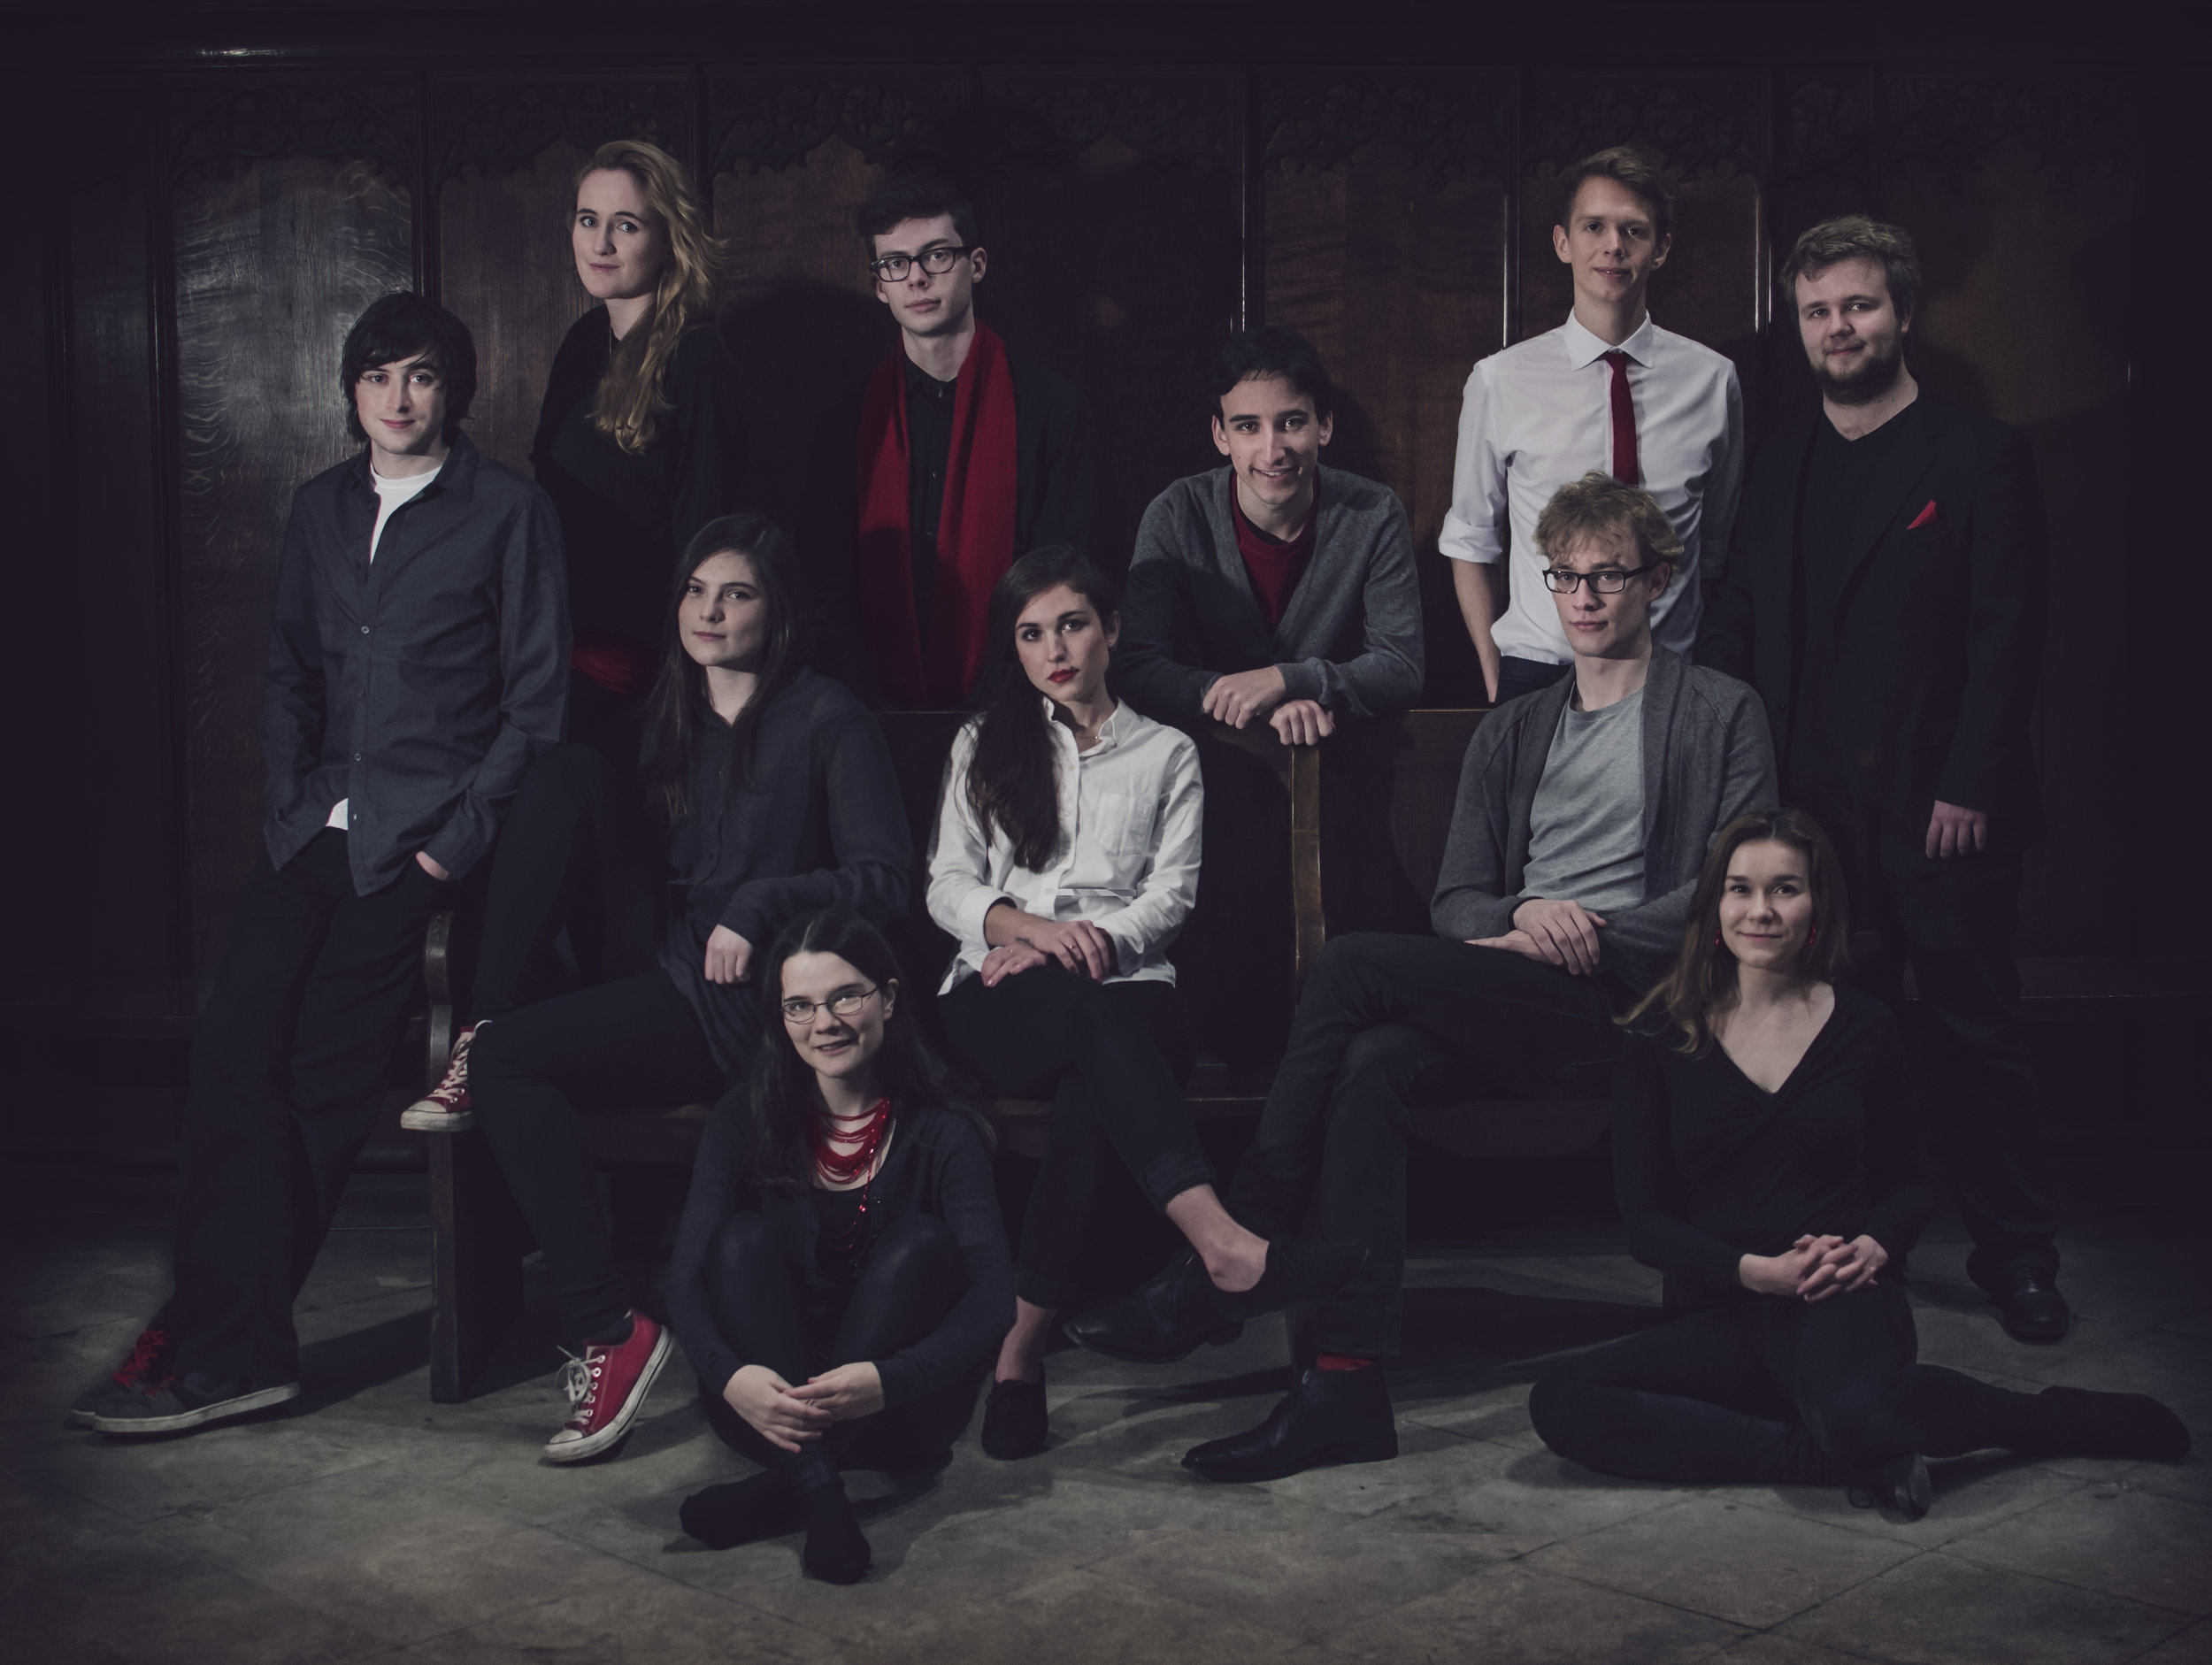 The Choir. - Concanenda started as a Cambridge-based chamber choir with an aim to promote choral music and innovative cross-genre collaborations through digital media. Xann founded the choir in November 2012 to highlight the wealth of young compositional and vocal talent that the UK had to offer.The choir's embrace of digital media is central to its identity, and has proven well suited to this medium through music videos, a remix competition and social media engagements. The choir's young singers are drawn from some of Cambridge University's most highly regarded chapel choirs, including the colleges of King's, Trinity and Jesus to name but a few